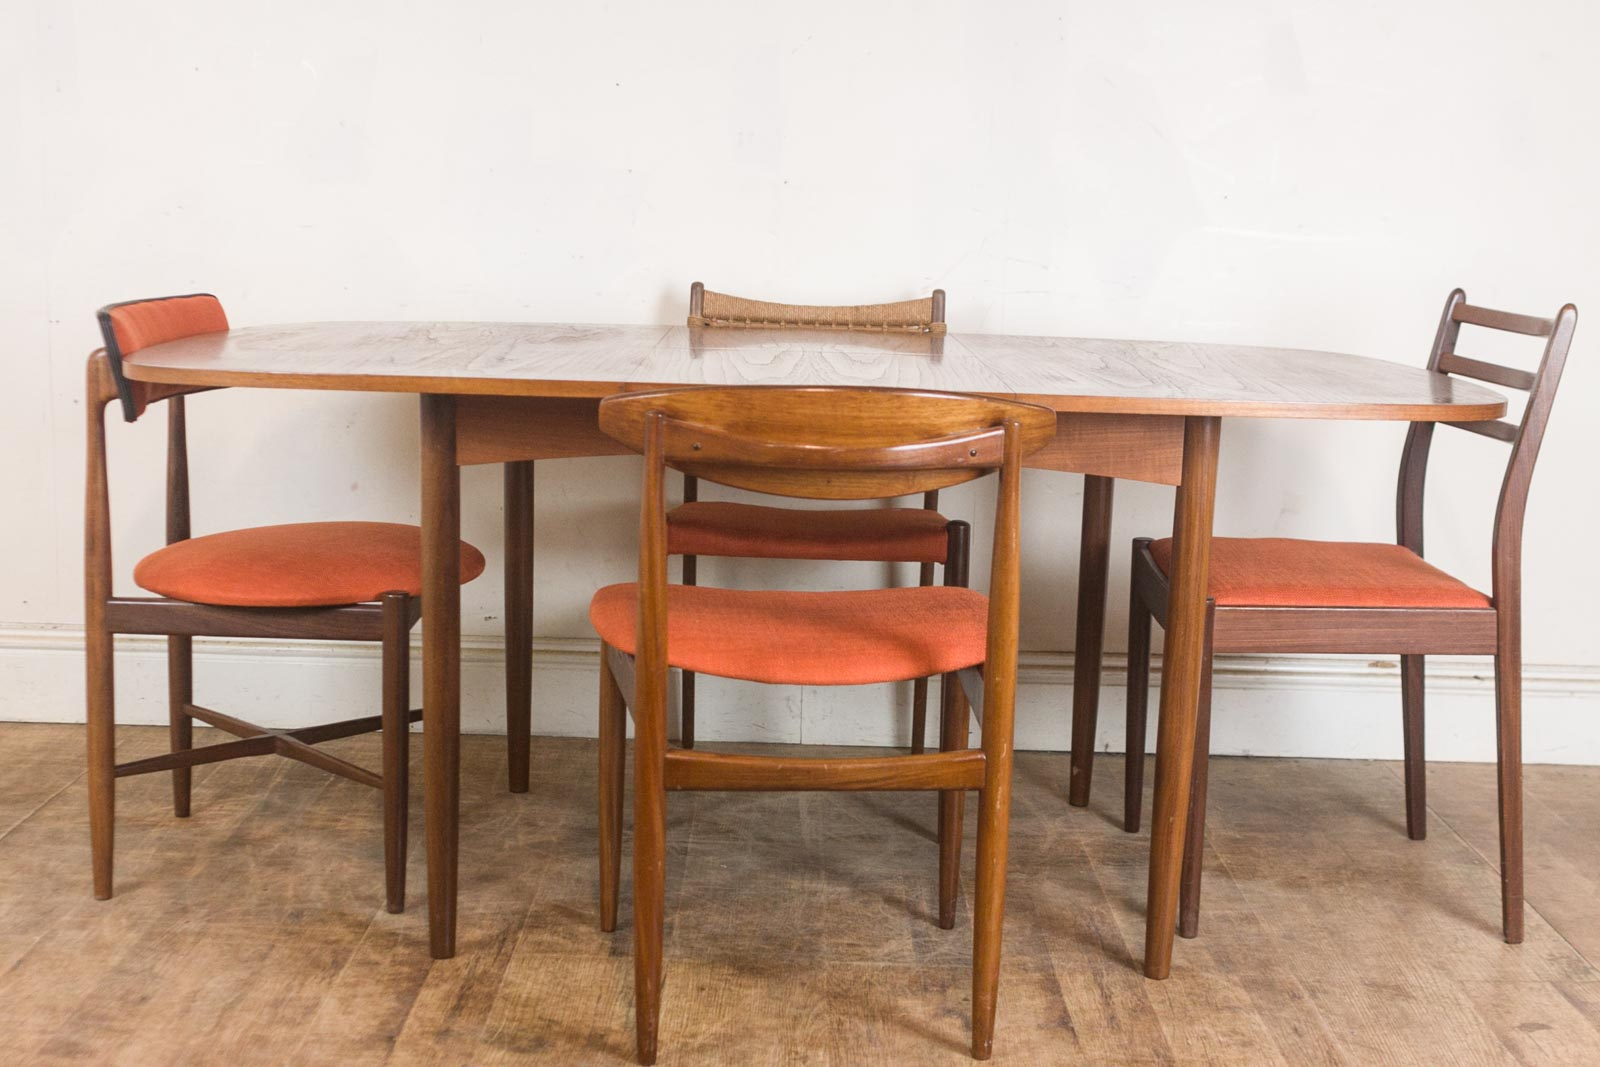 Vintage Retro G Plan Teak Oval Dining Table and 4 Mixed G  : hV040613 7 from www.ebay.co.uk size 1600 x 1067 jpeg 188kB